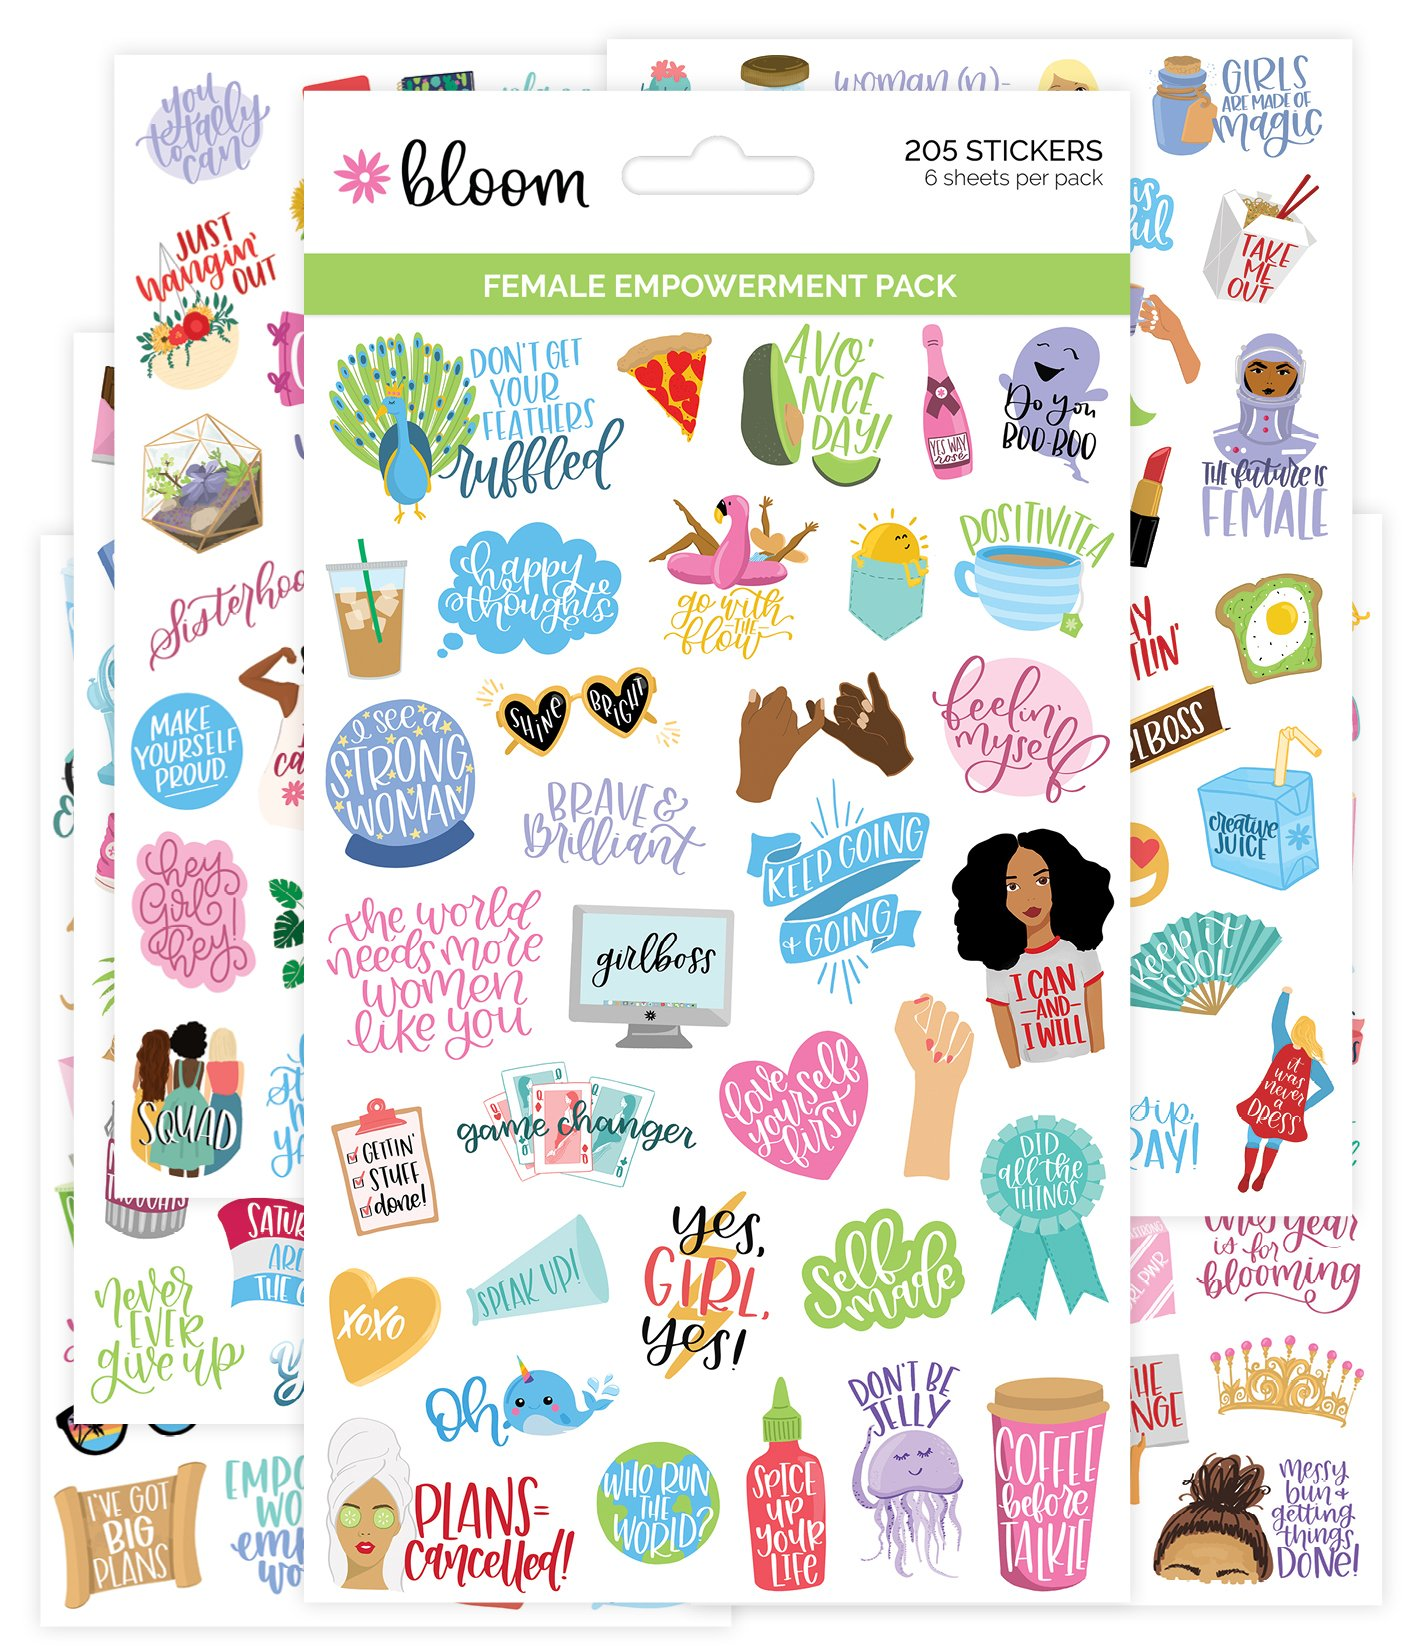 Female Empowerment Pack Sticker Sheets